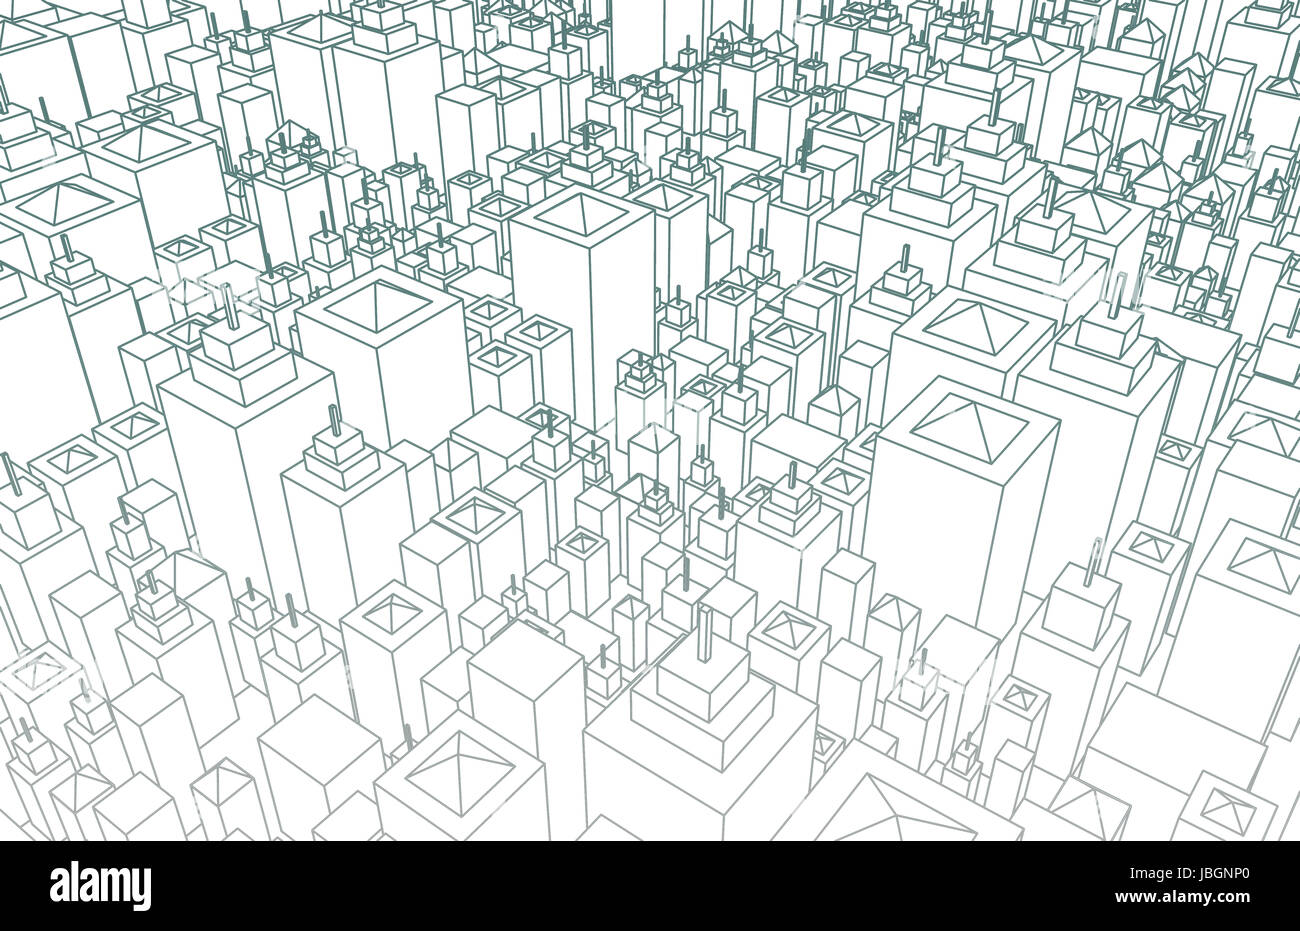 Wireframe city with buildings and blueprint design art stock photo wireframe city with buildings and blueprint design art malvernweather Choice Image